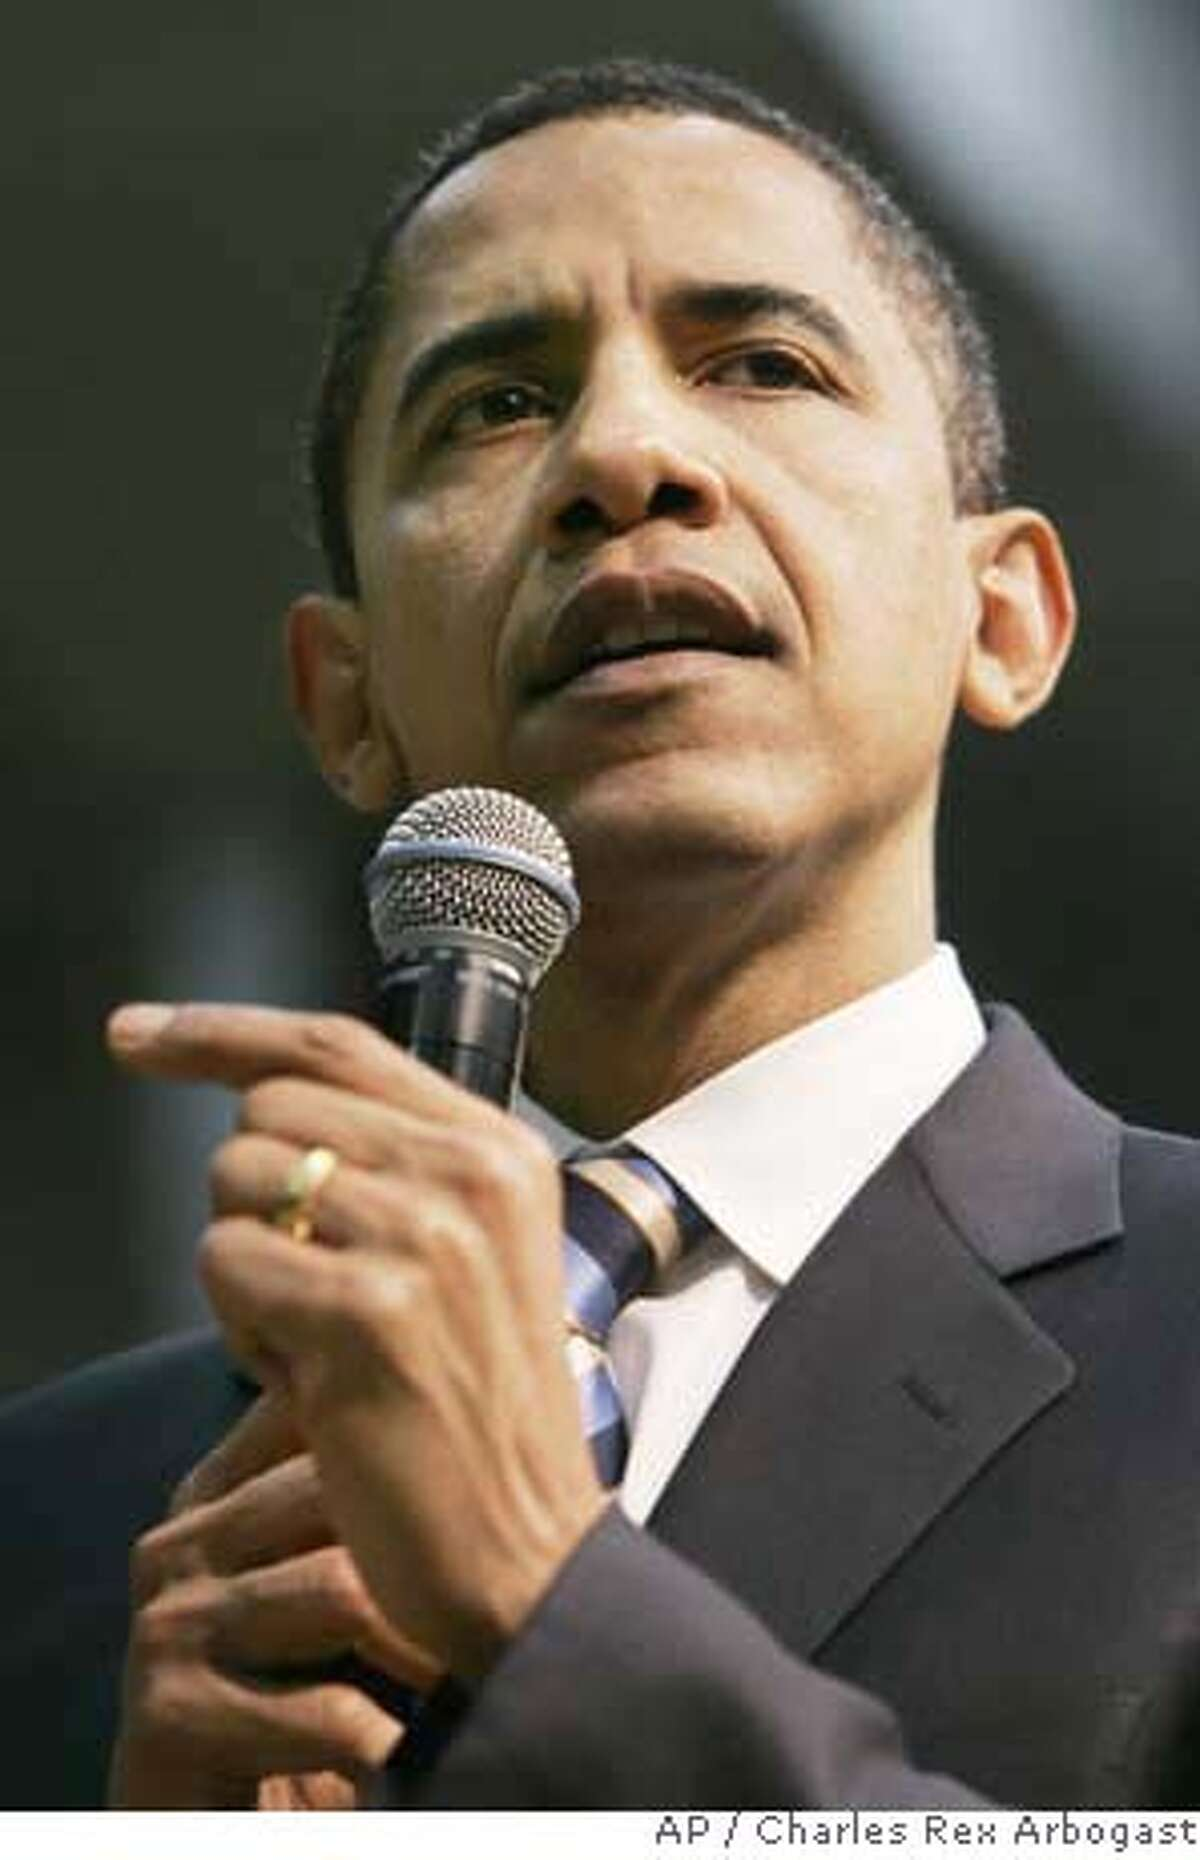 Democratic presidential hopeful, Sen. Barack Obama, D-Ill., campaigns during a town hall meeting in Beaufort, S.C., Thursday, Jan. 24, 2008. (AP Photo/Charles Rex Arbogast)